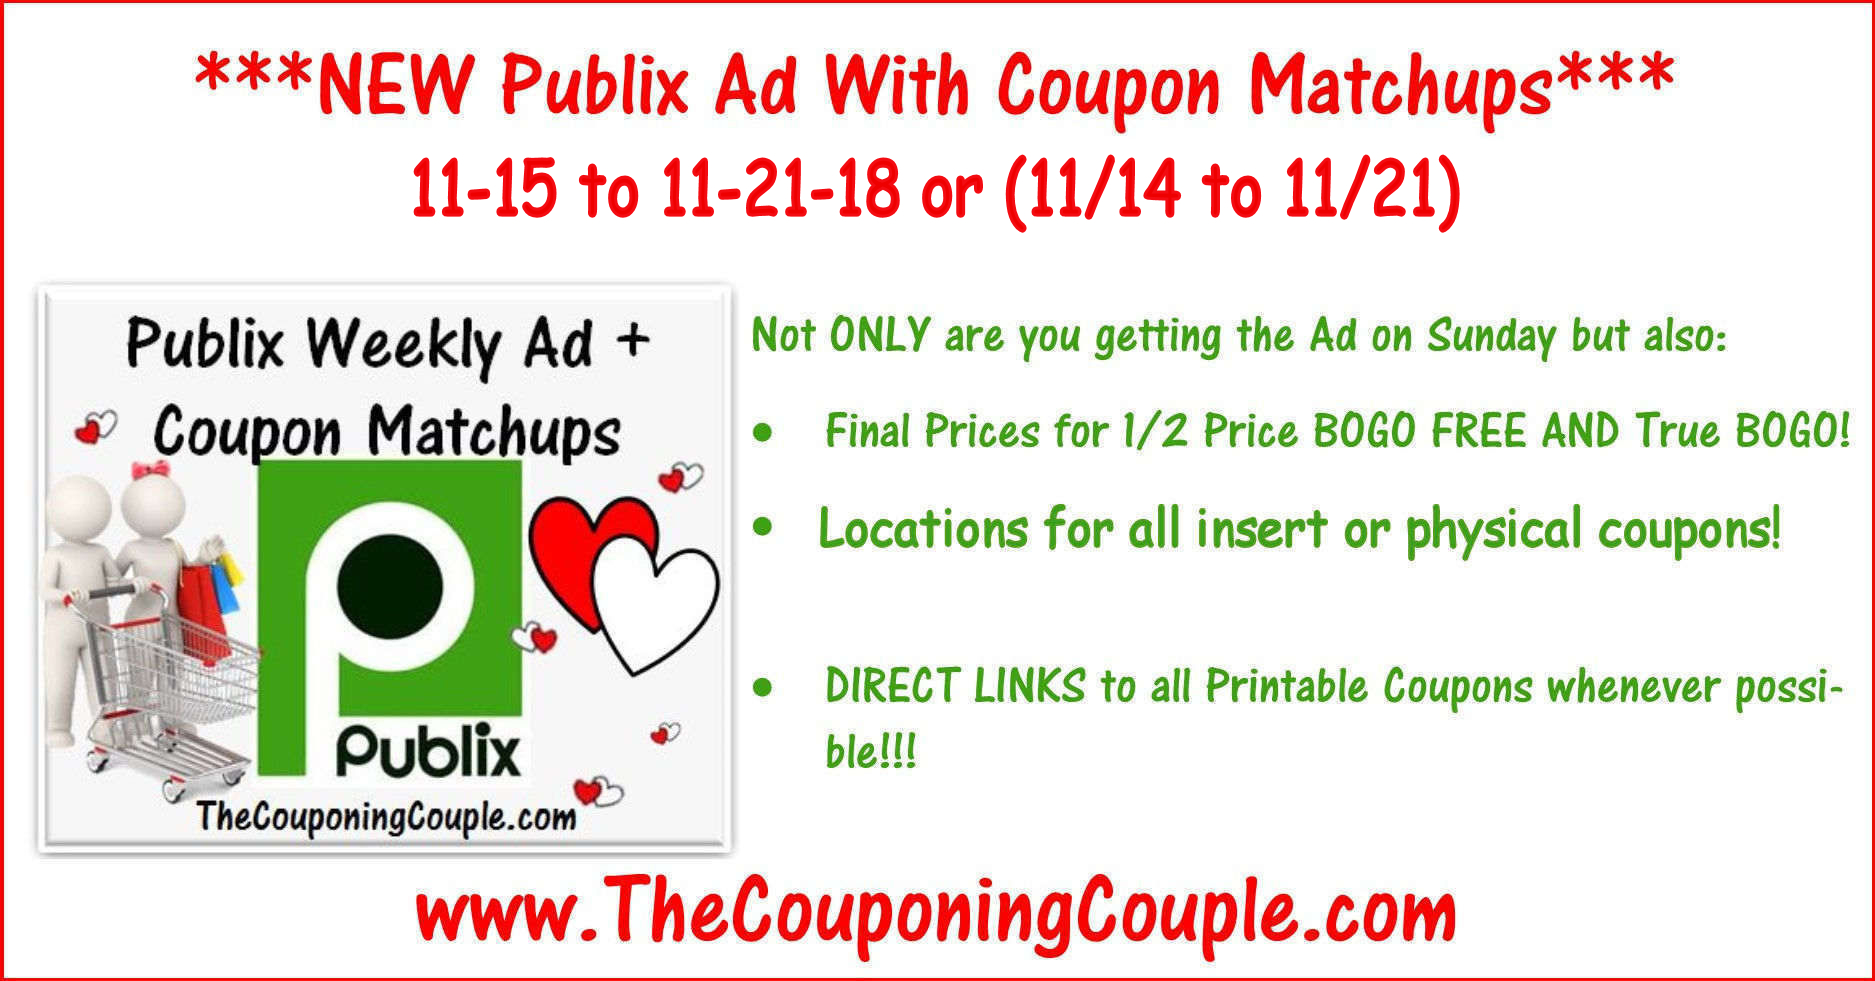 Publix Coupon Matchups For 11-15 To 11-21-18 Or (11/14 To 11/21 - Free Printable Chinet Coupons